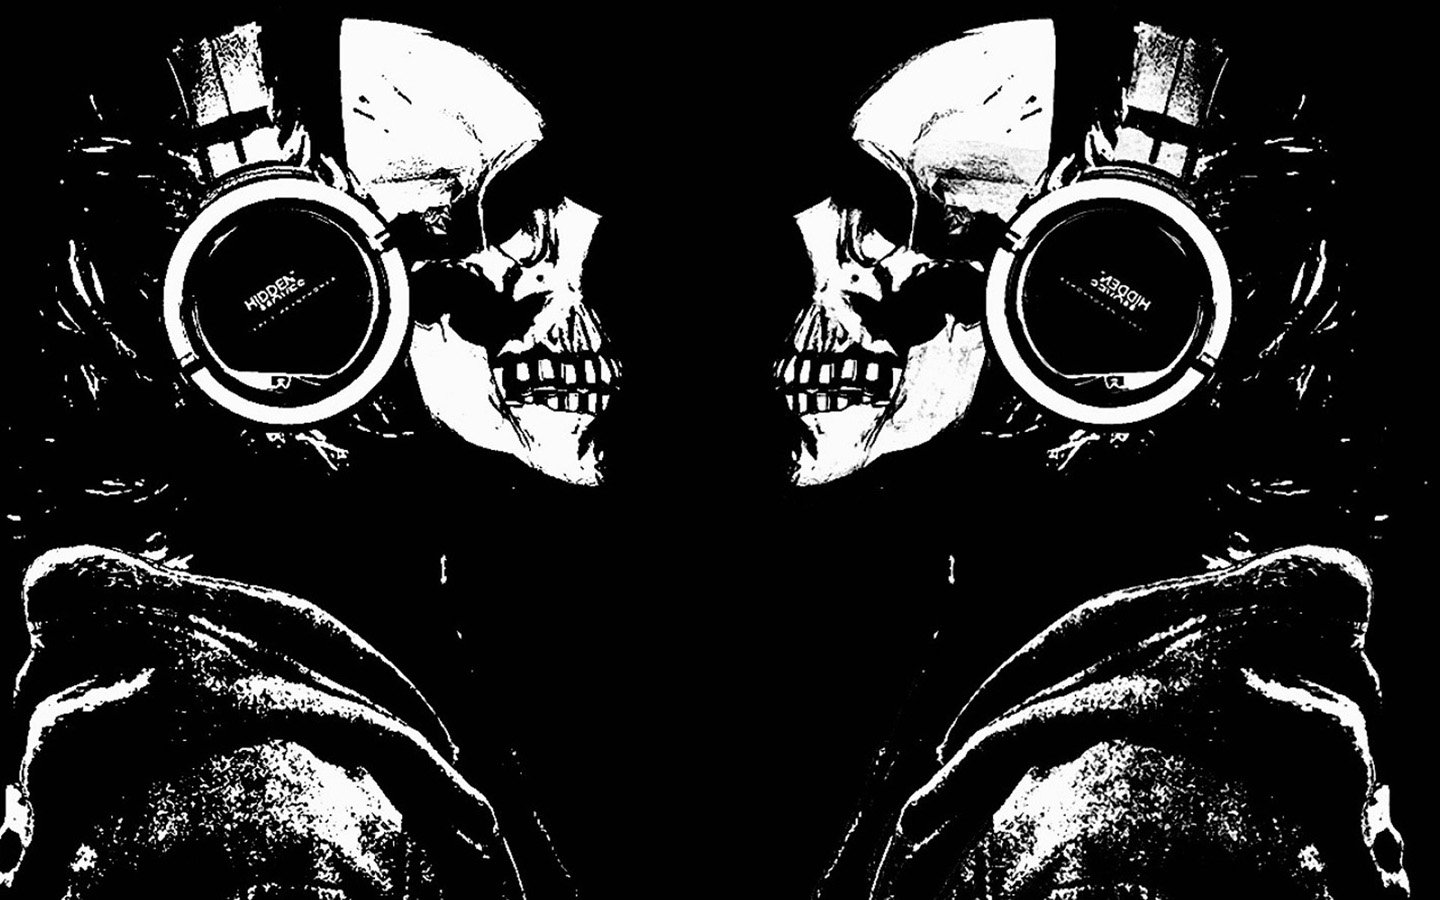 Scary Wallpaper - Music Skull Wallpaper HD | Scary Wallpapers